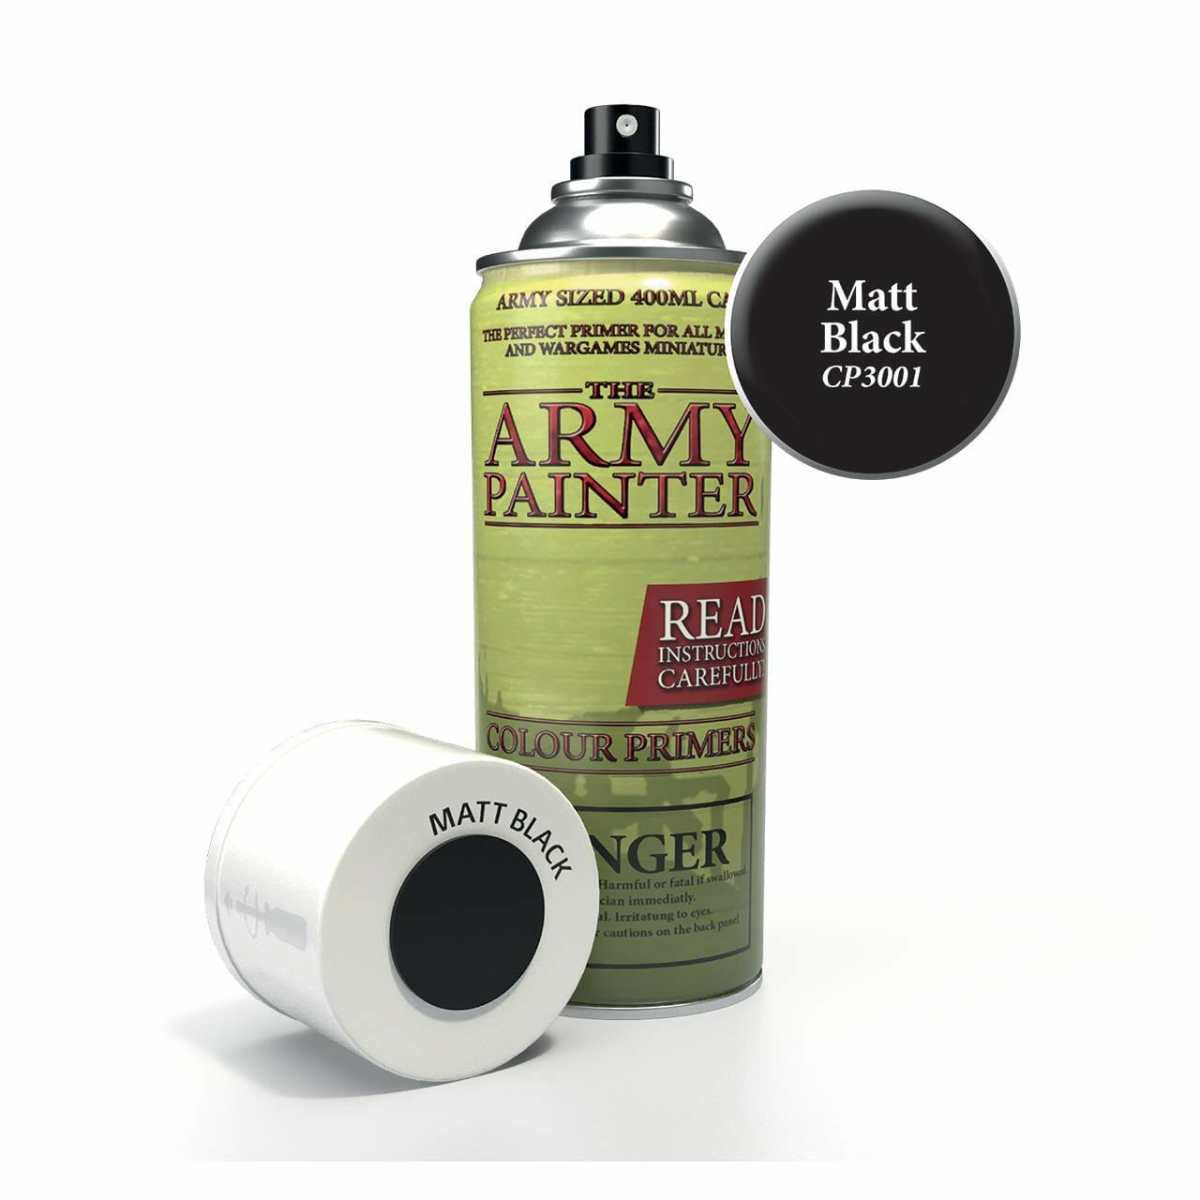 Army Painter Primer